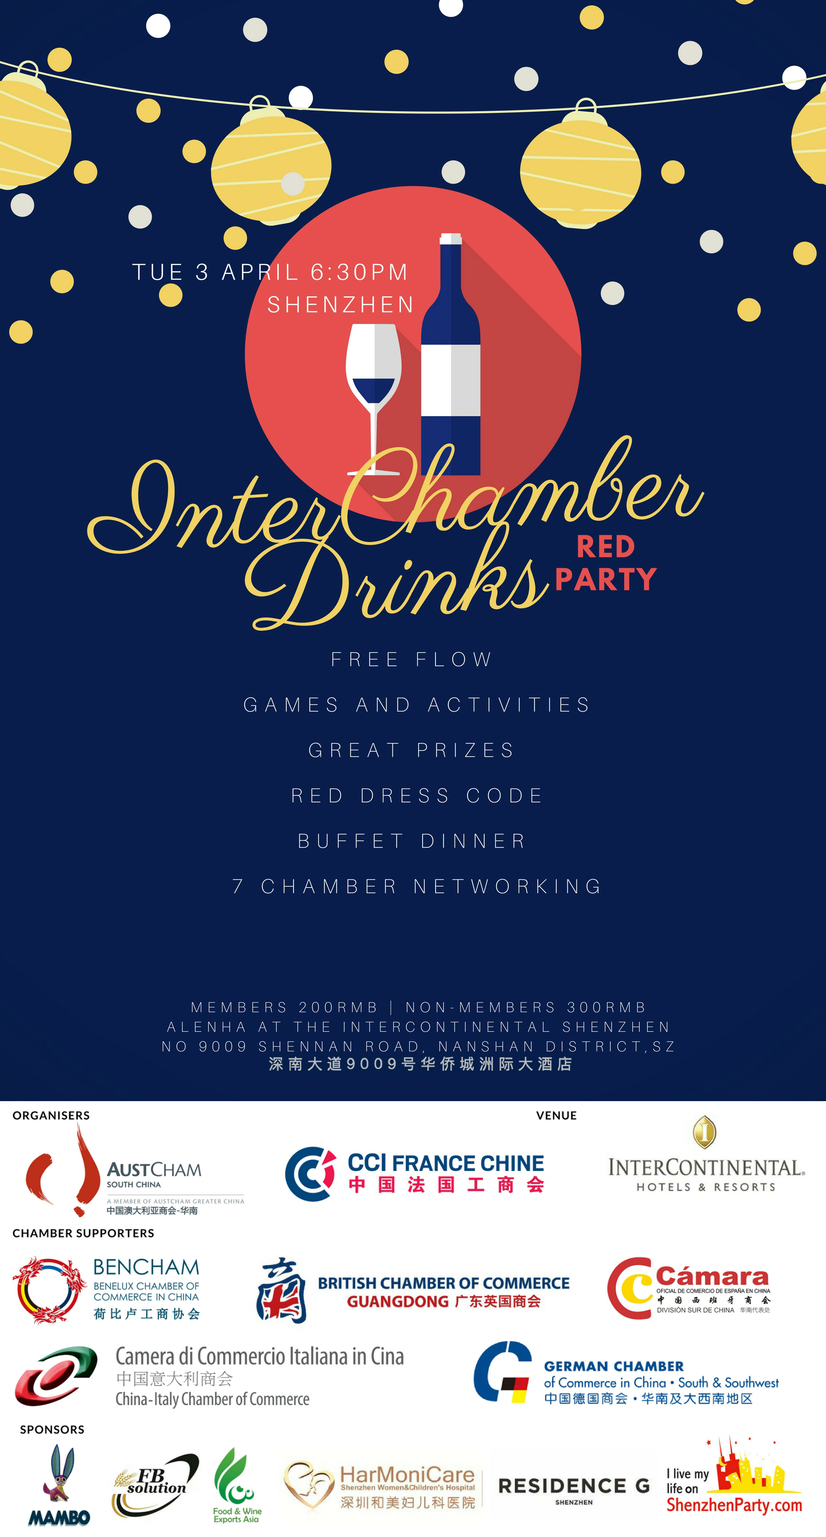 Shenzhen InterChamber Networking Drinks